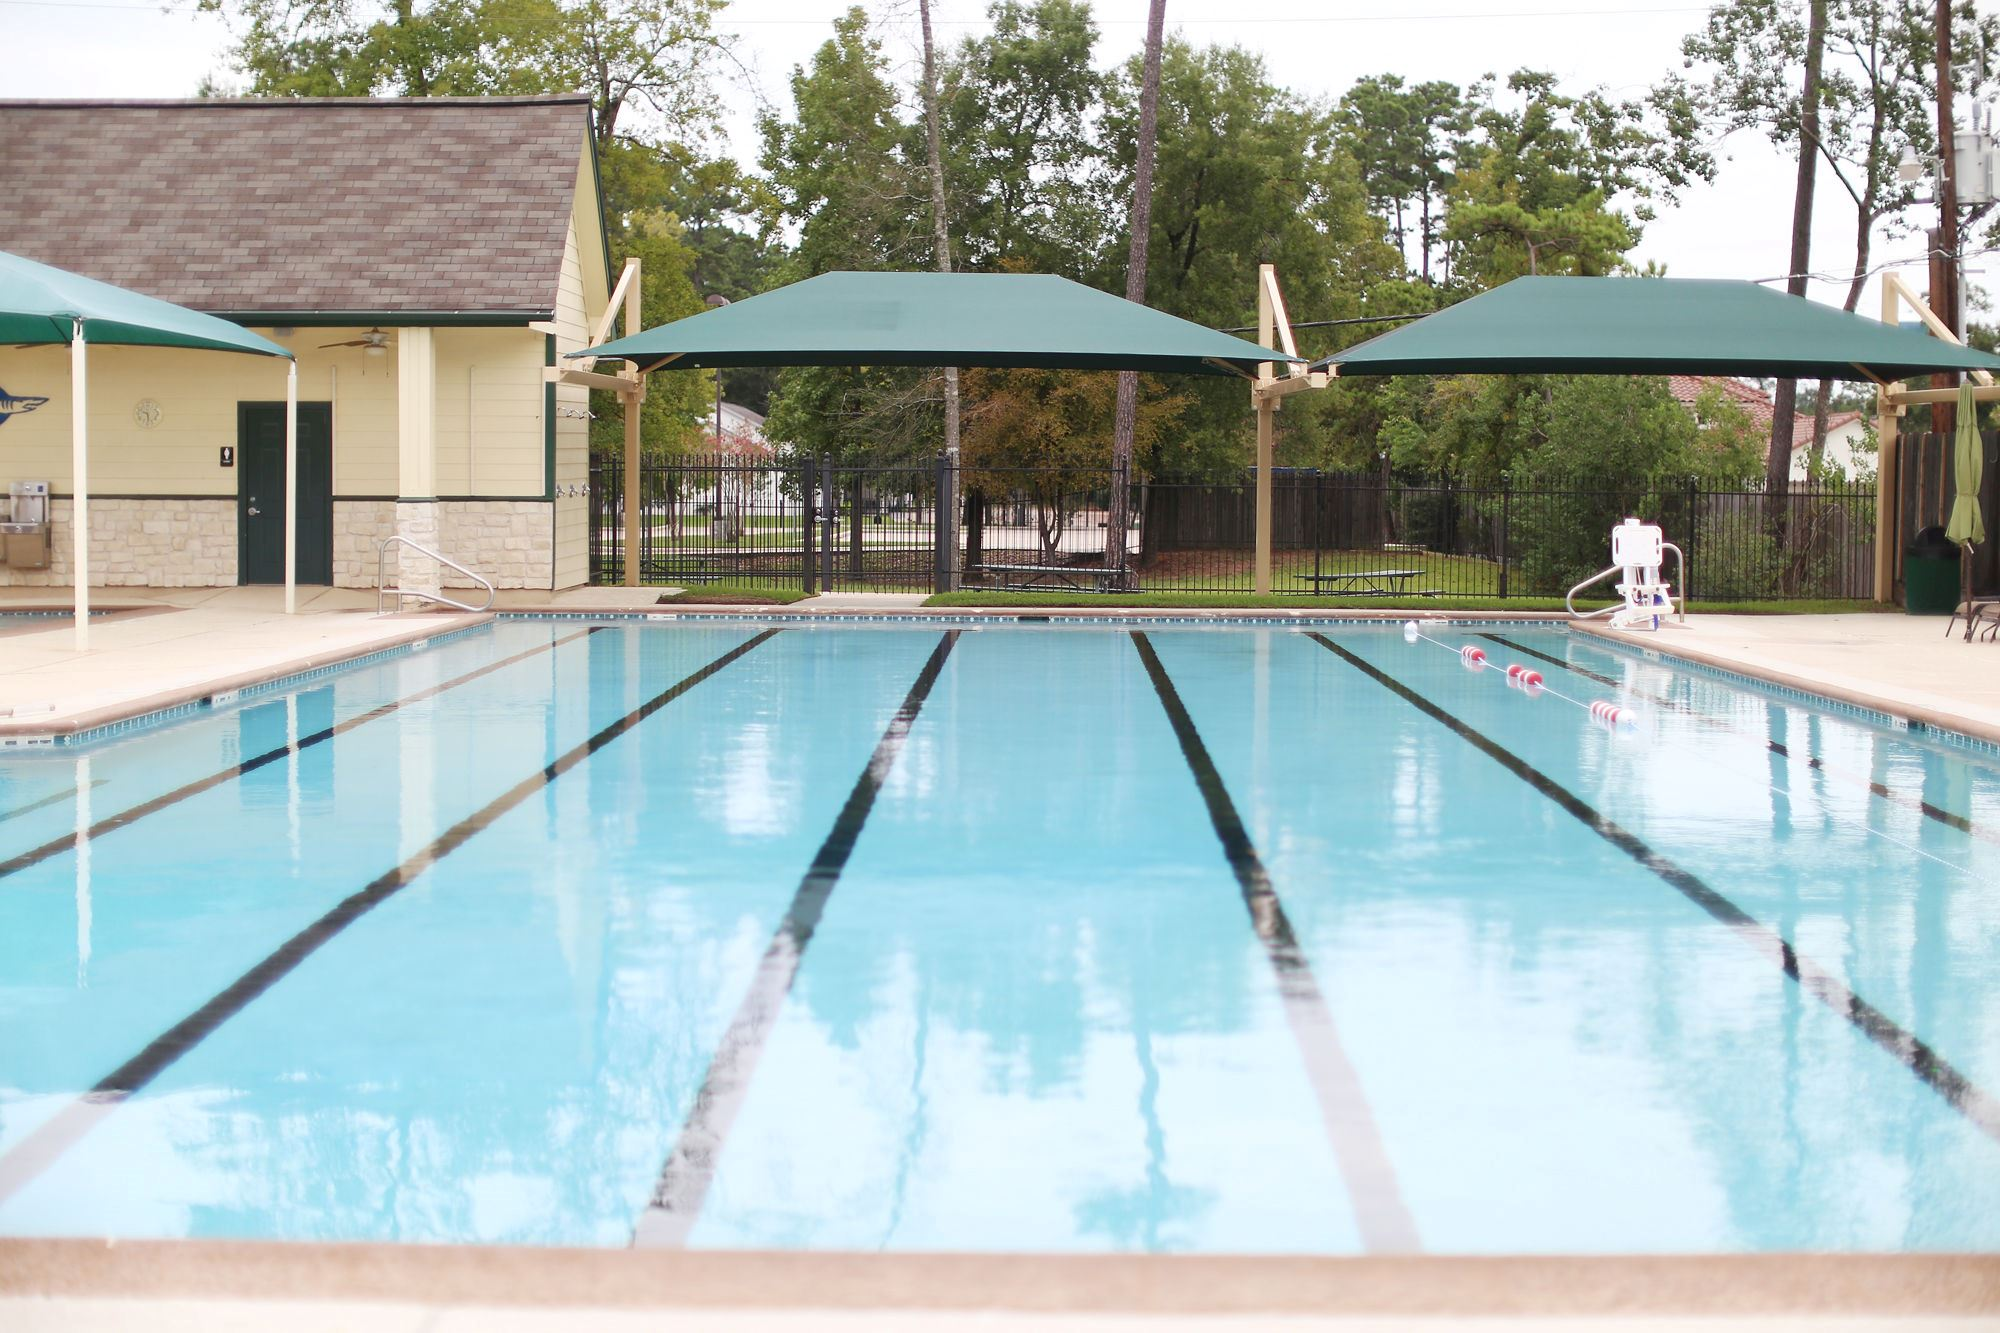 View of the pool looking toward the awnings